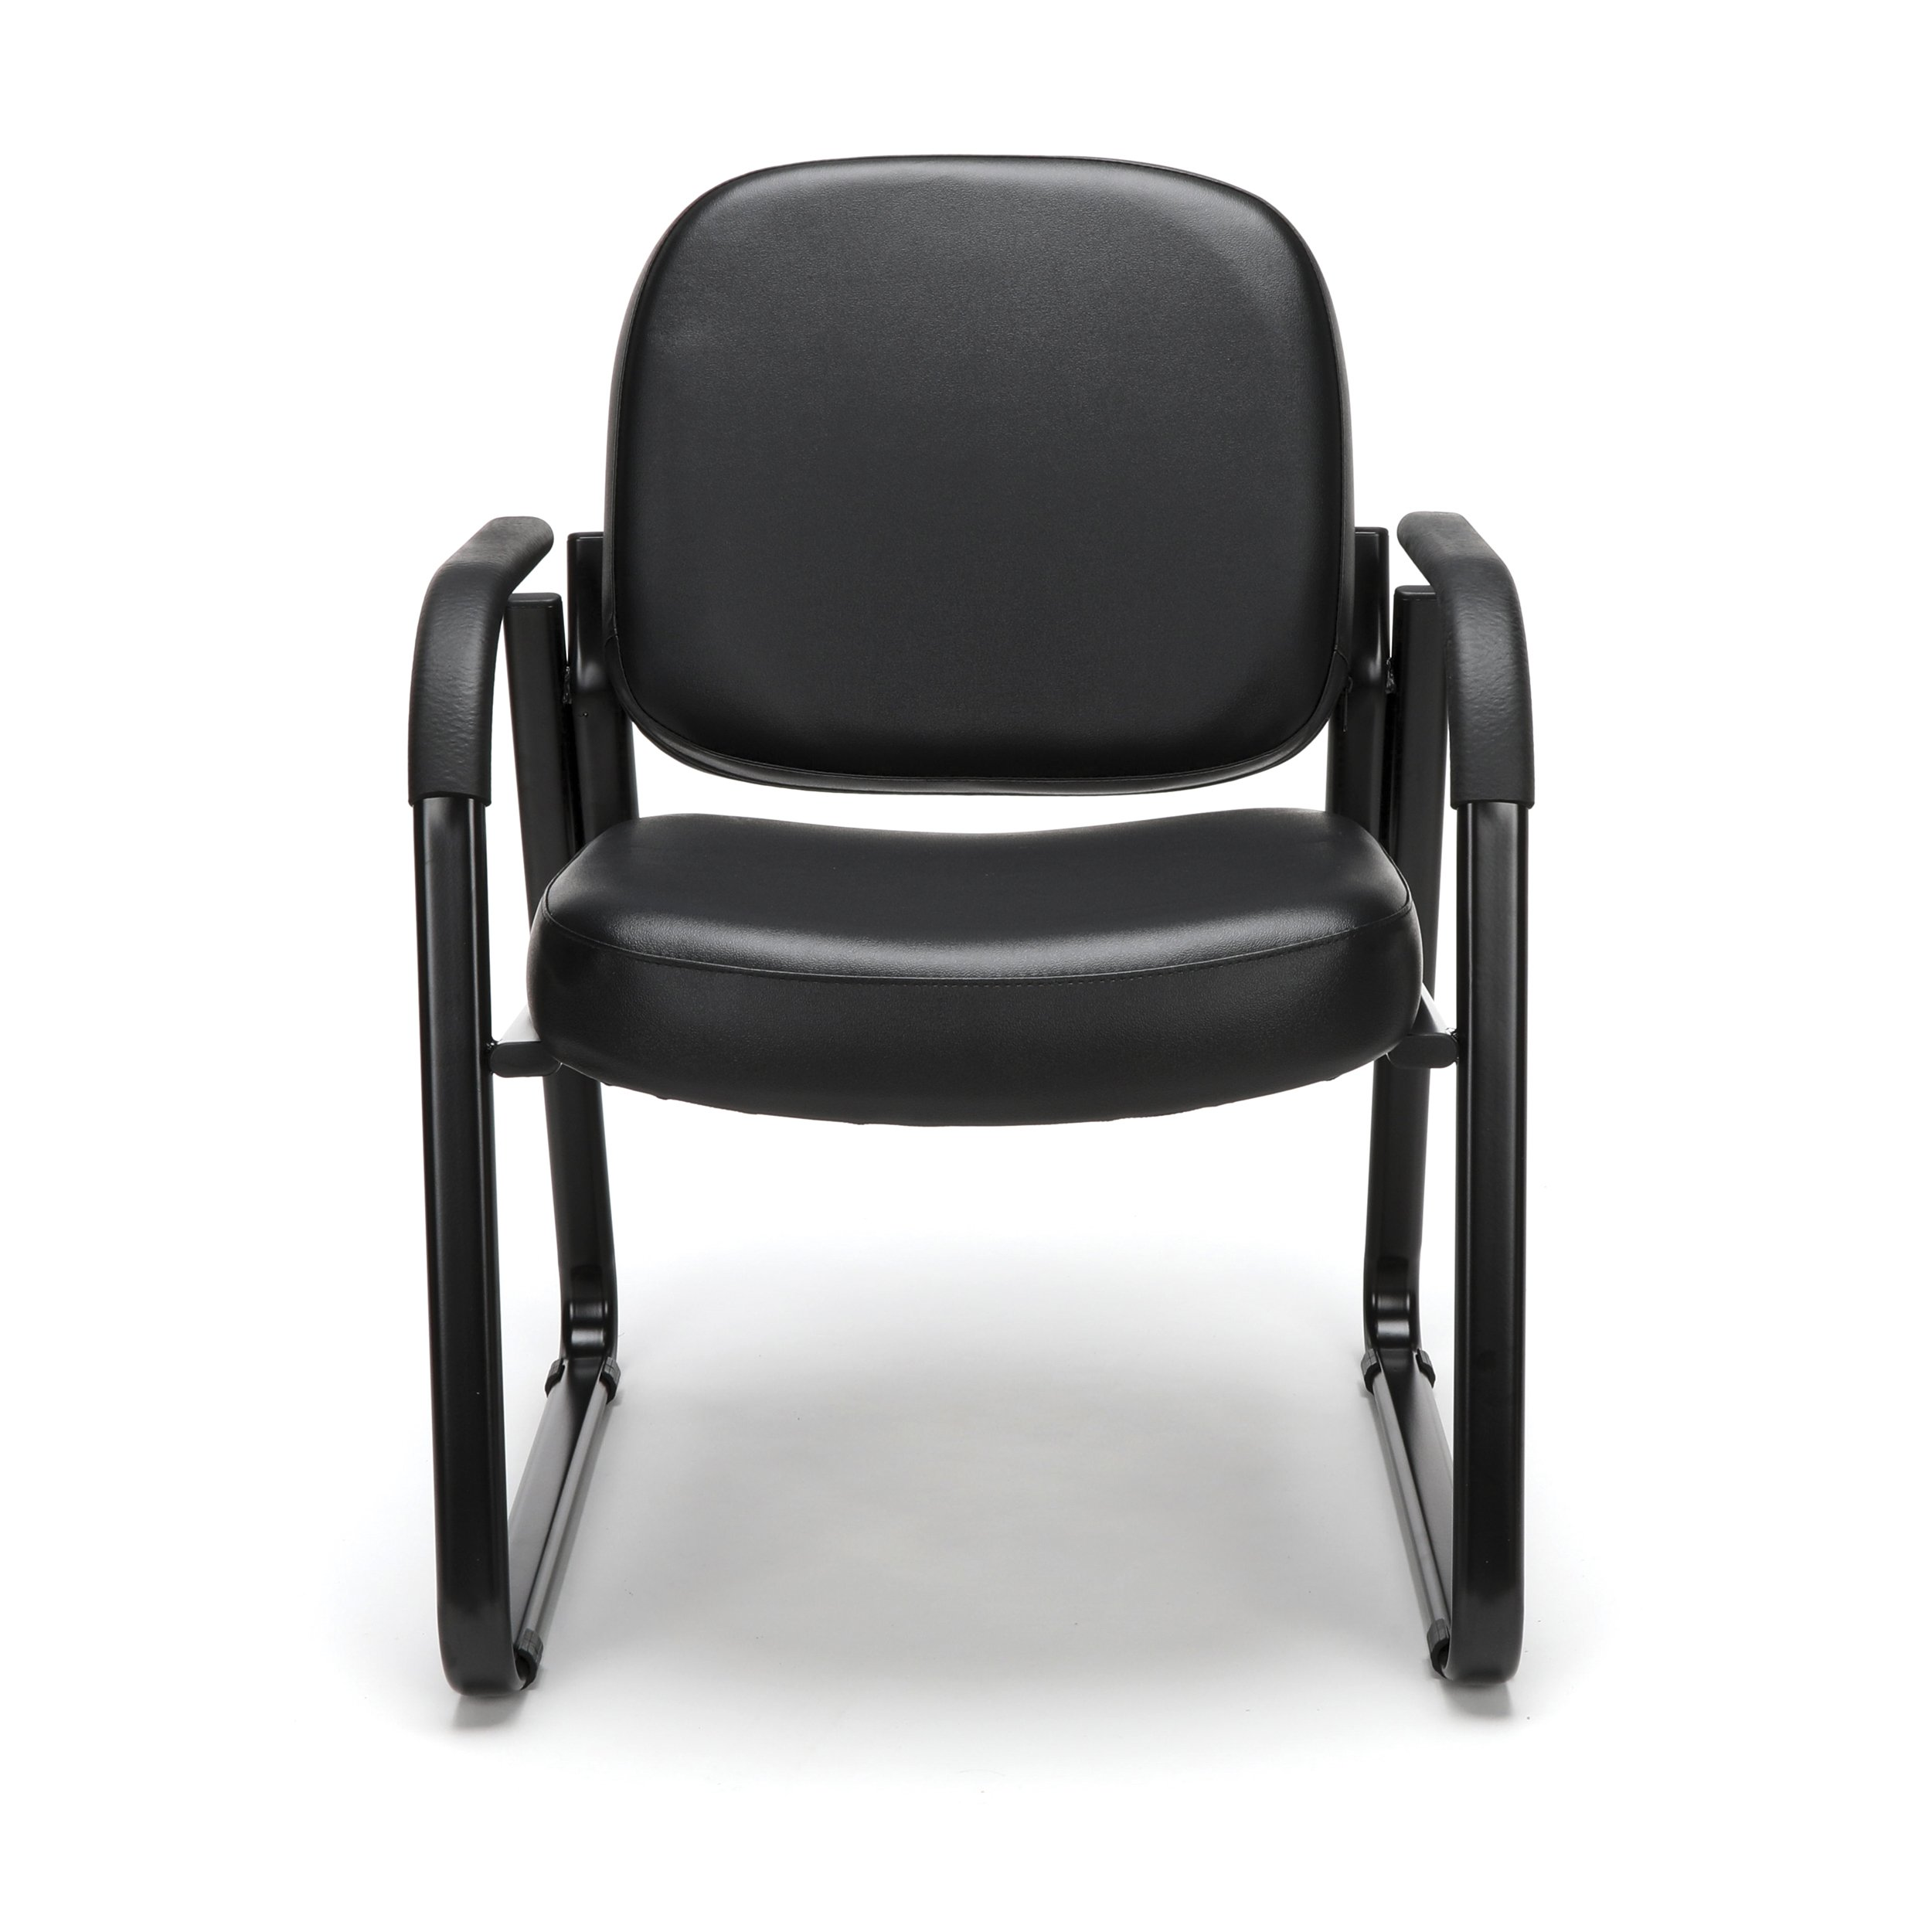 OFM Model 403-VAM Guest and Reception Chair with Arms, Anti-Microbial/Anti-Bacterial Vinyl, Black by OFM (Image #2)